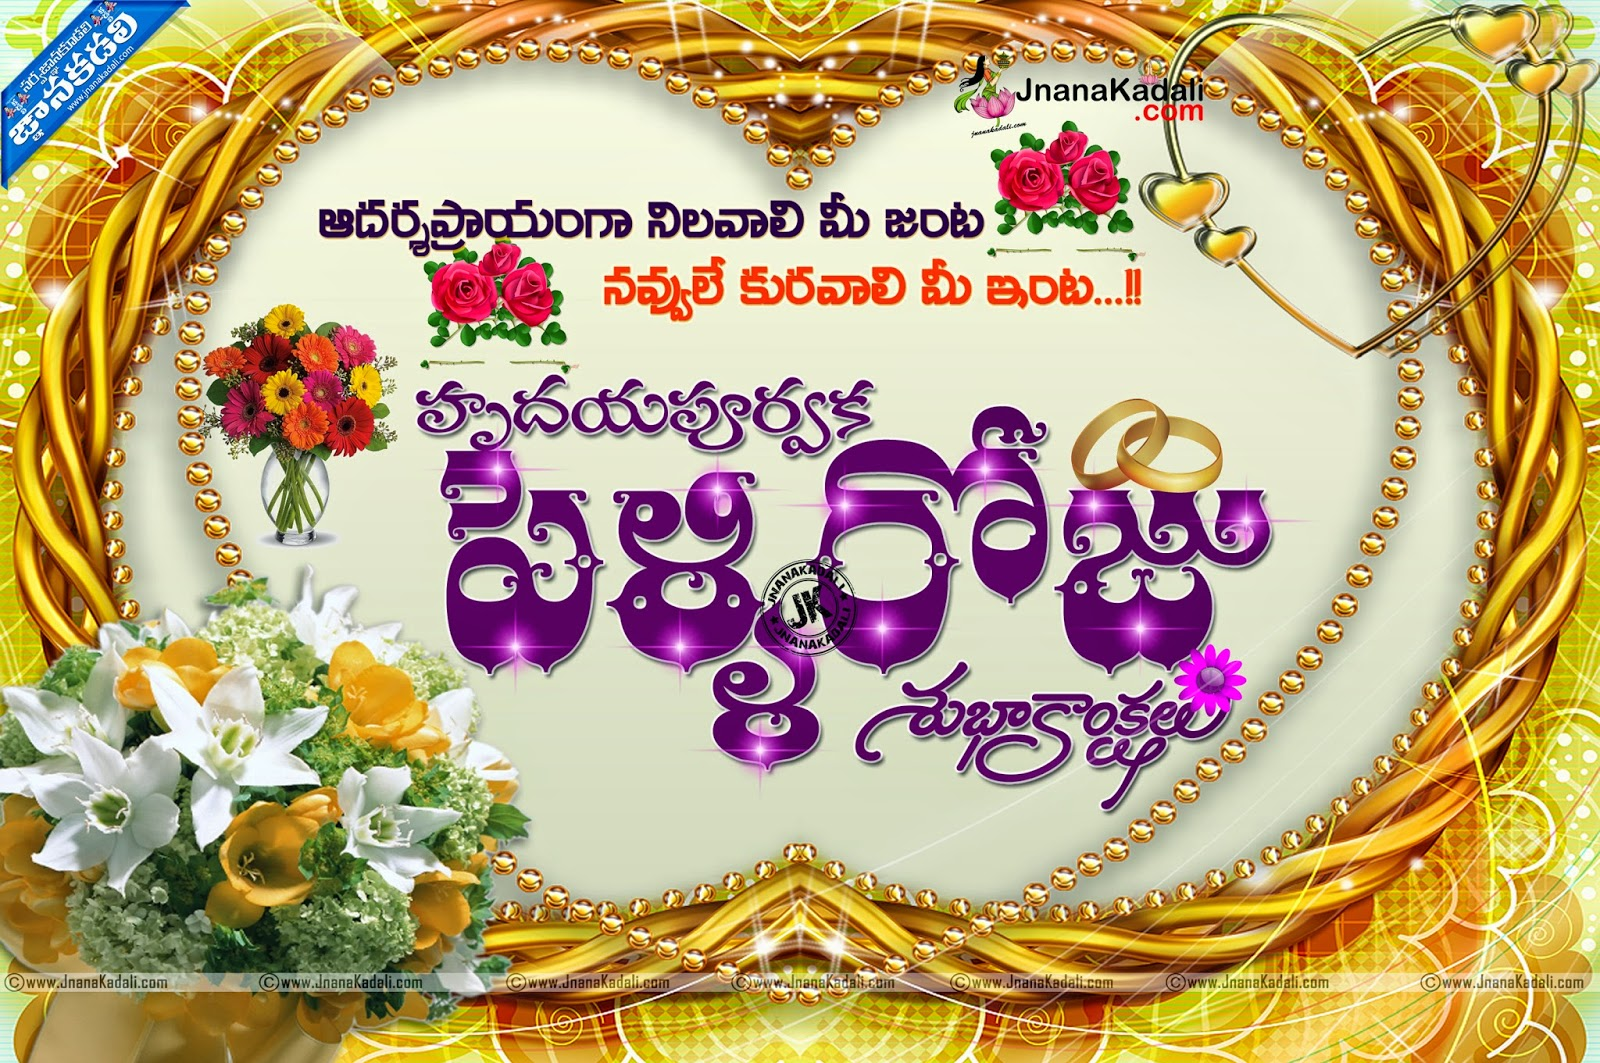 Marriage day wishes Quotes hd wallpapers Pelliroju ...